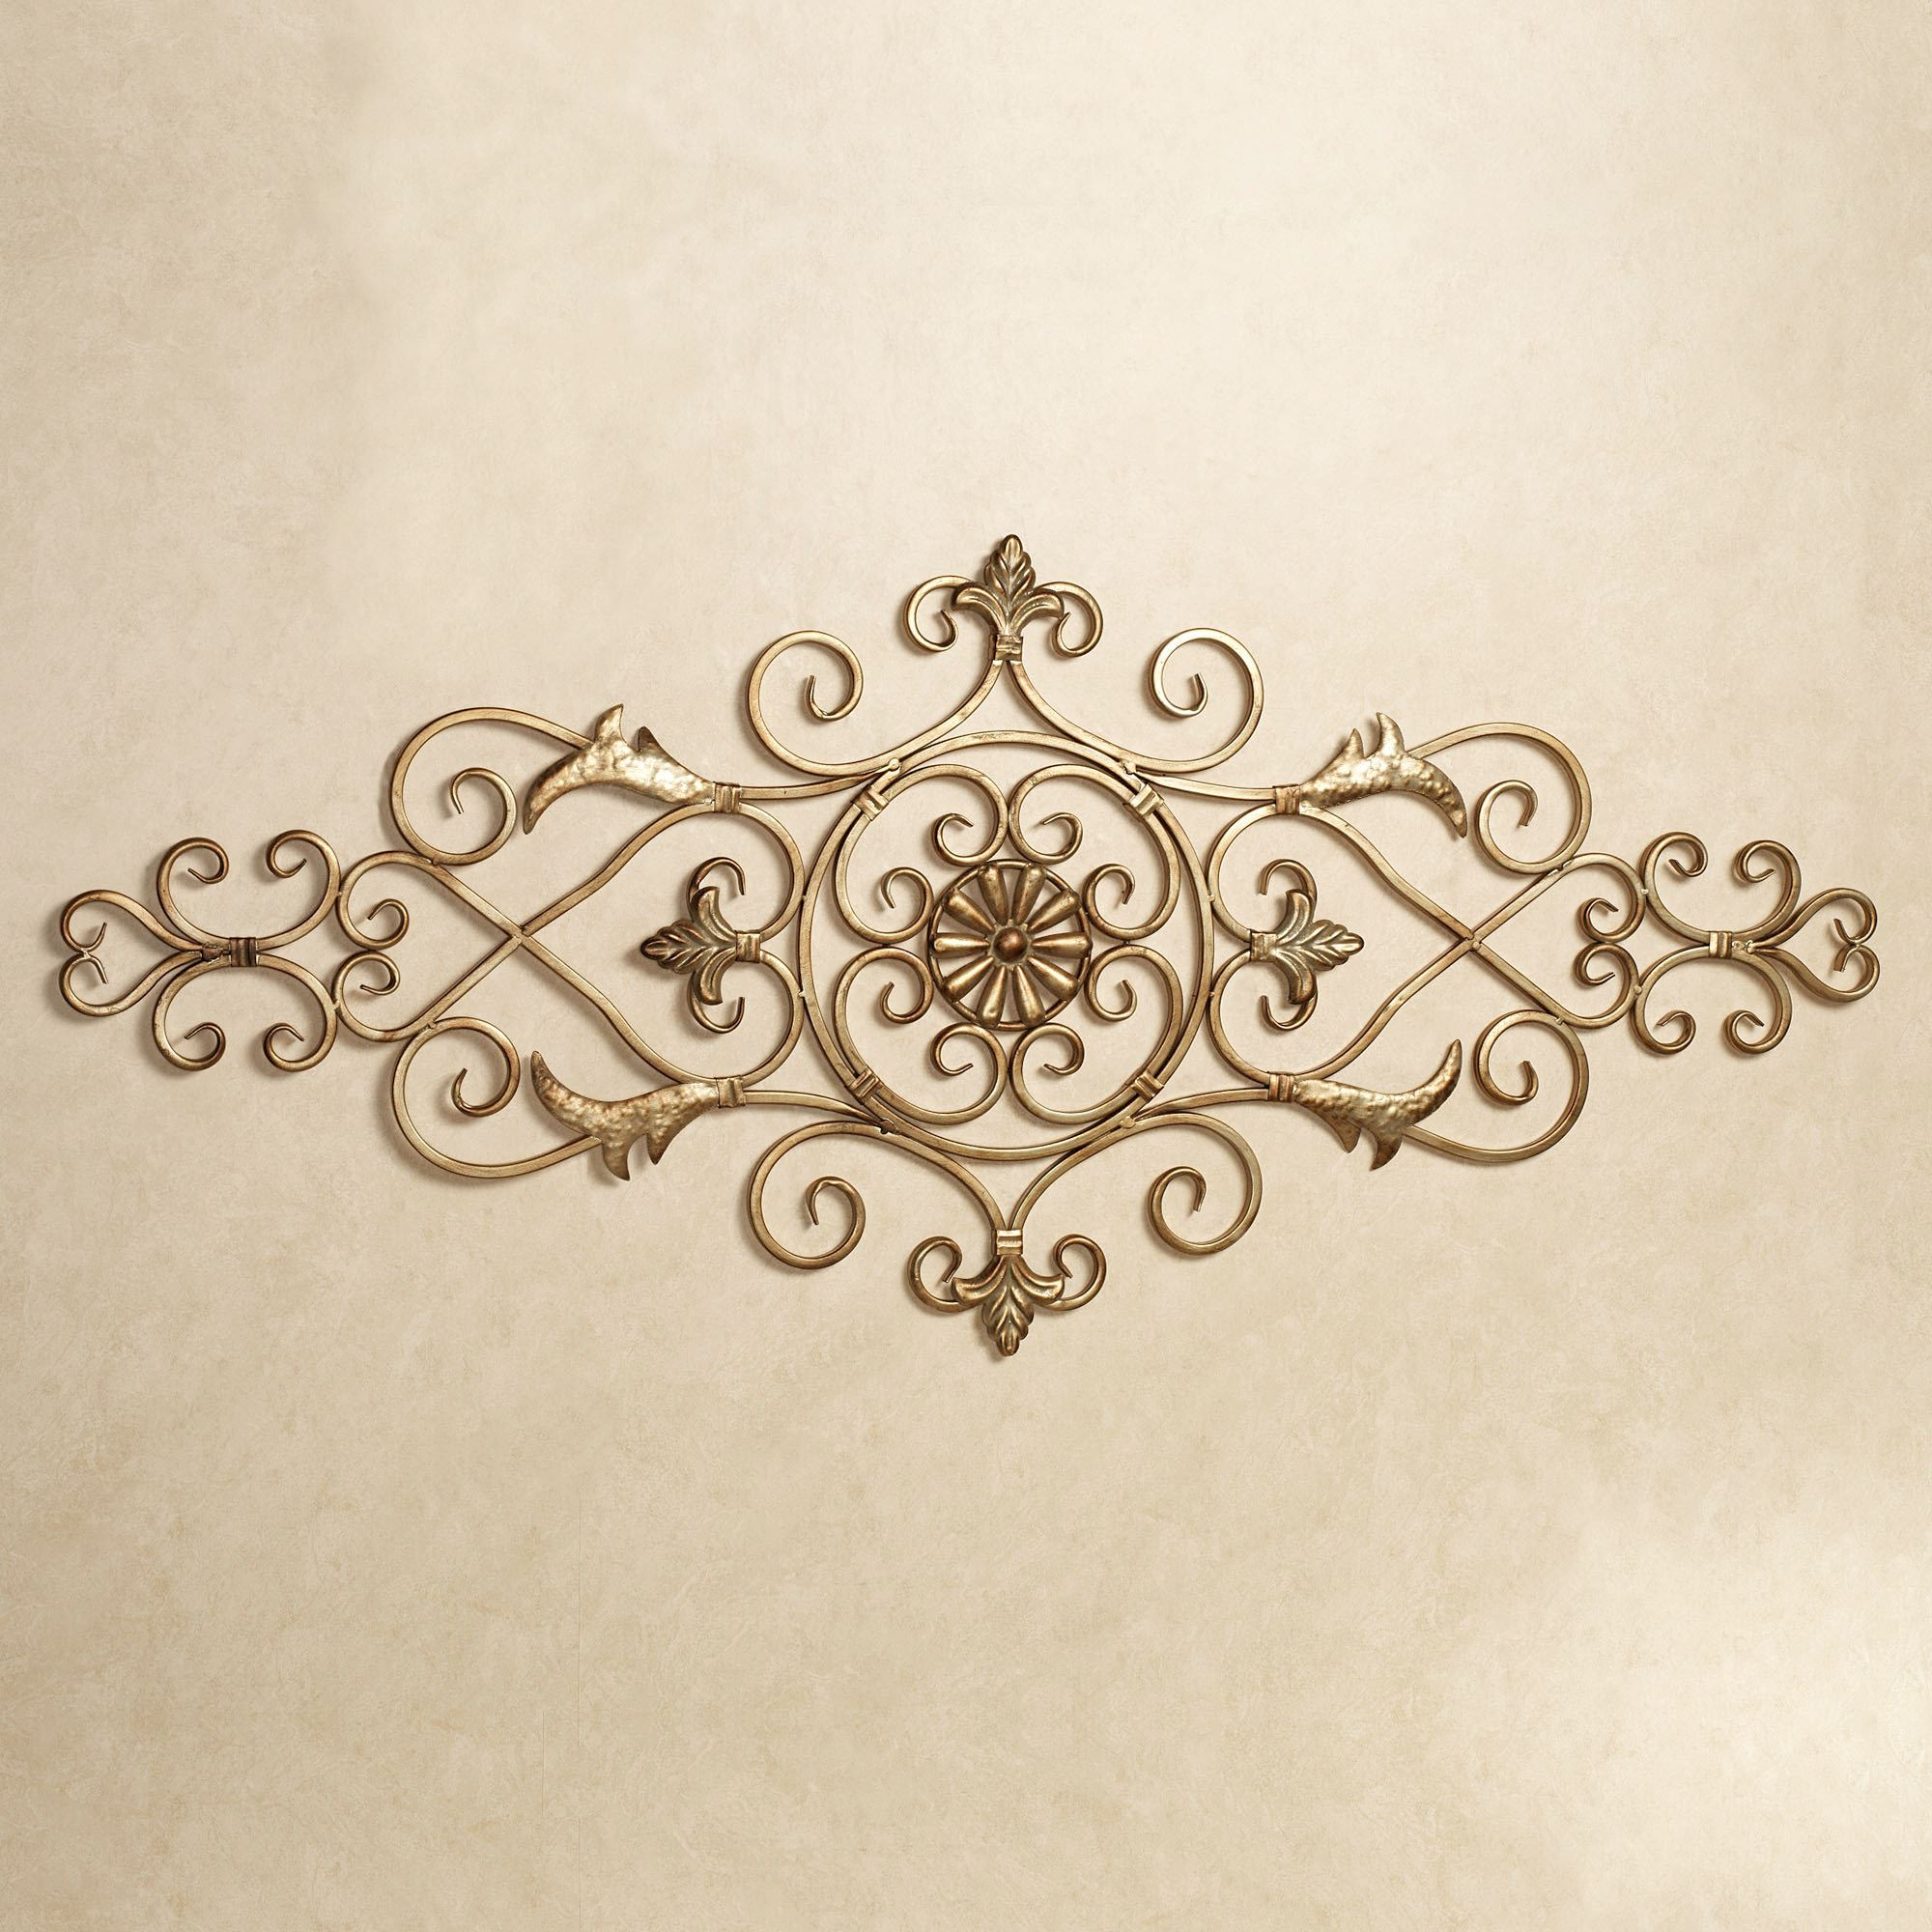 Merano Scrolling Metal Wall Grille Regarding Scroll Framed Wall Decor (View 13 of 30)